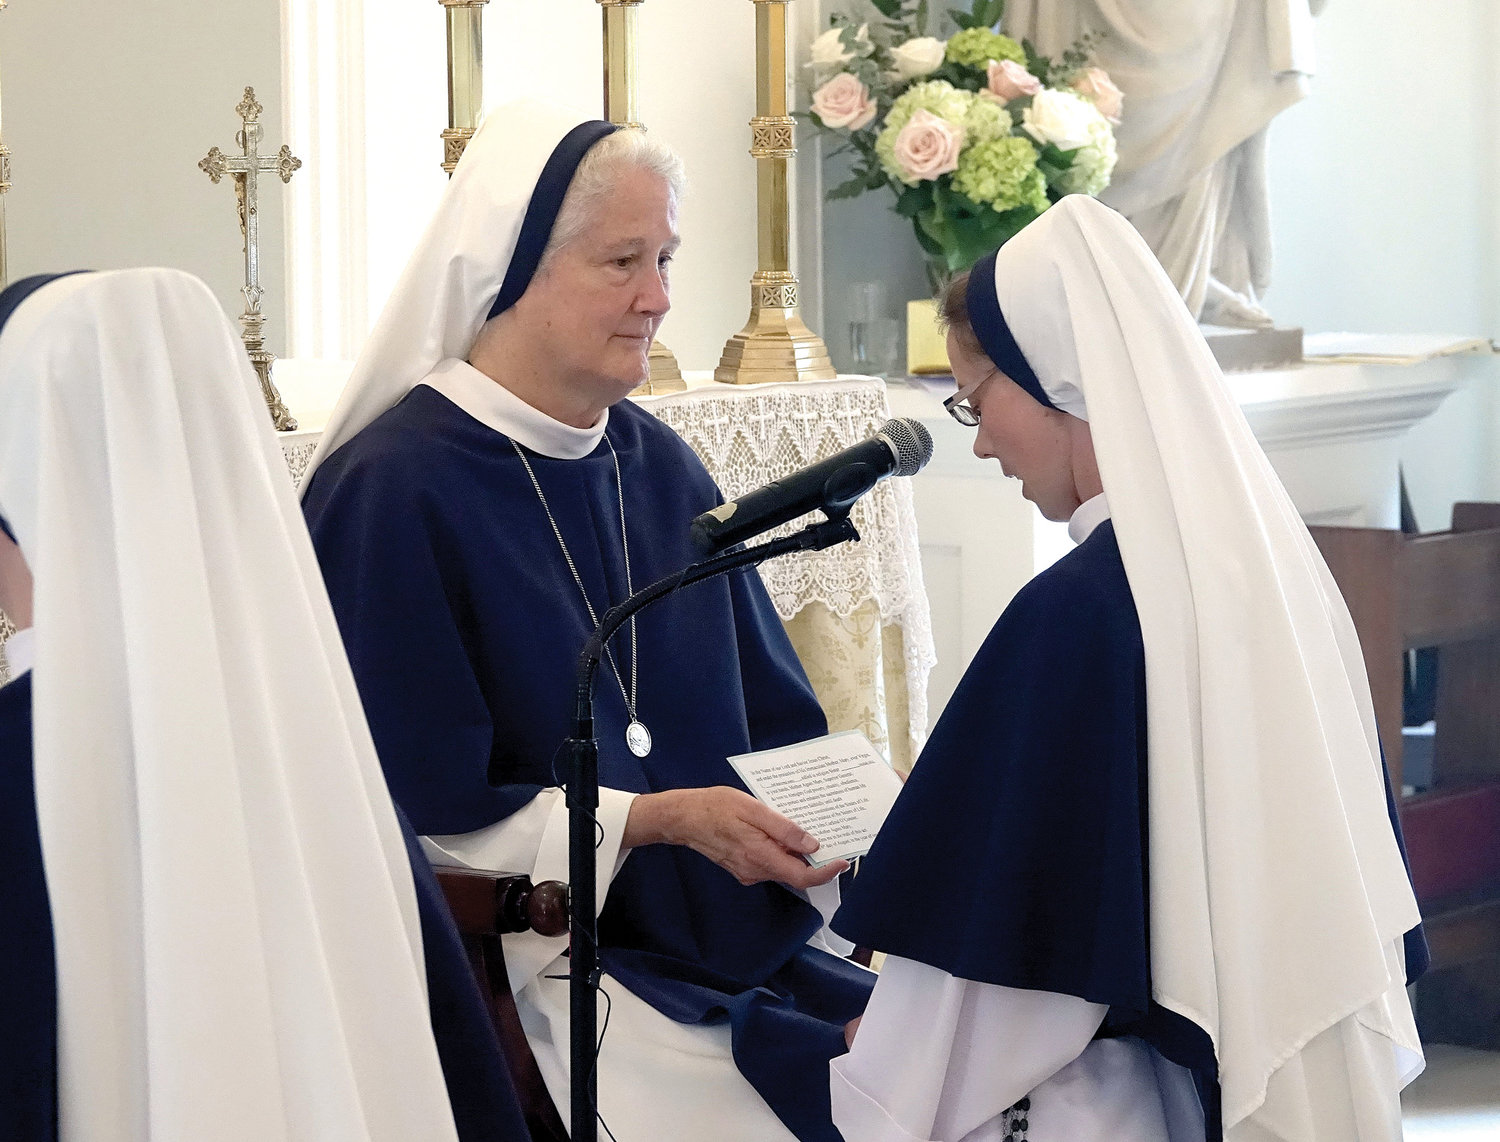 Sister Naomi Maria Magnificat, S.V., professes vows before Mother Agnes Mary Donovan, S.V., superior general of the Sisters of Life.